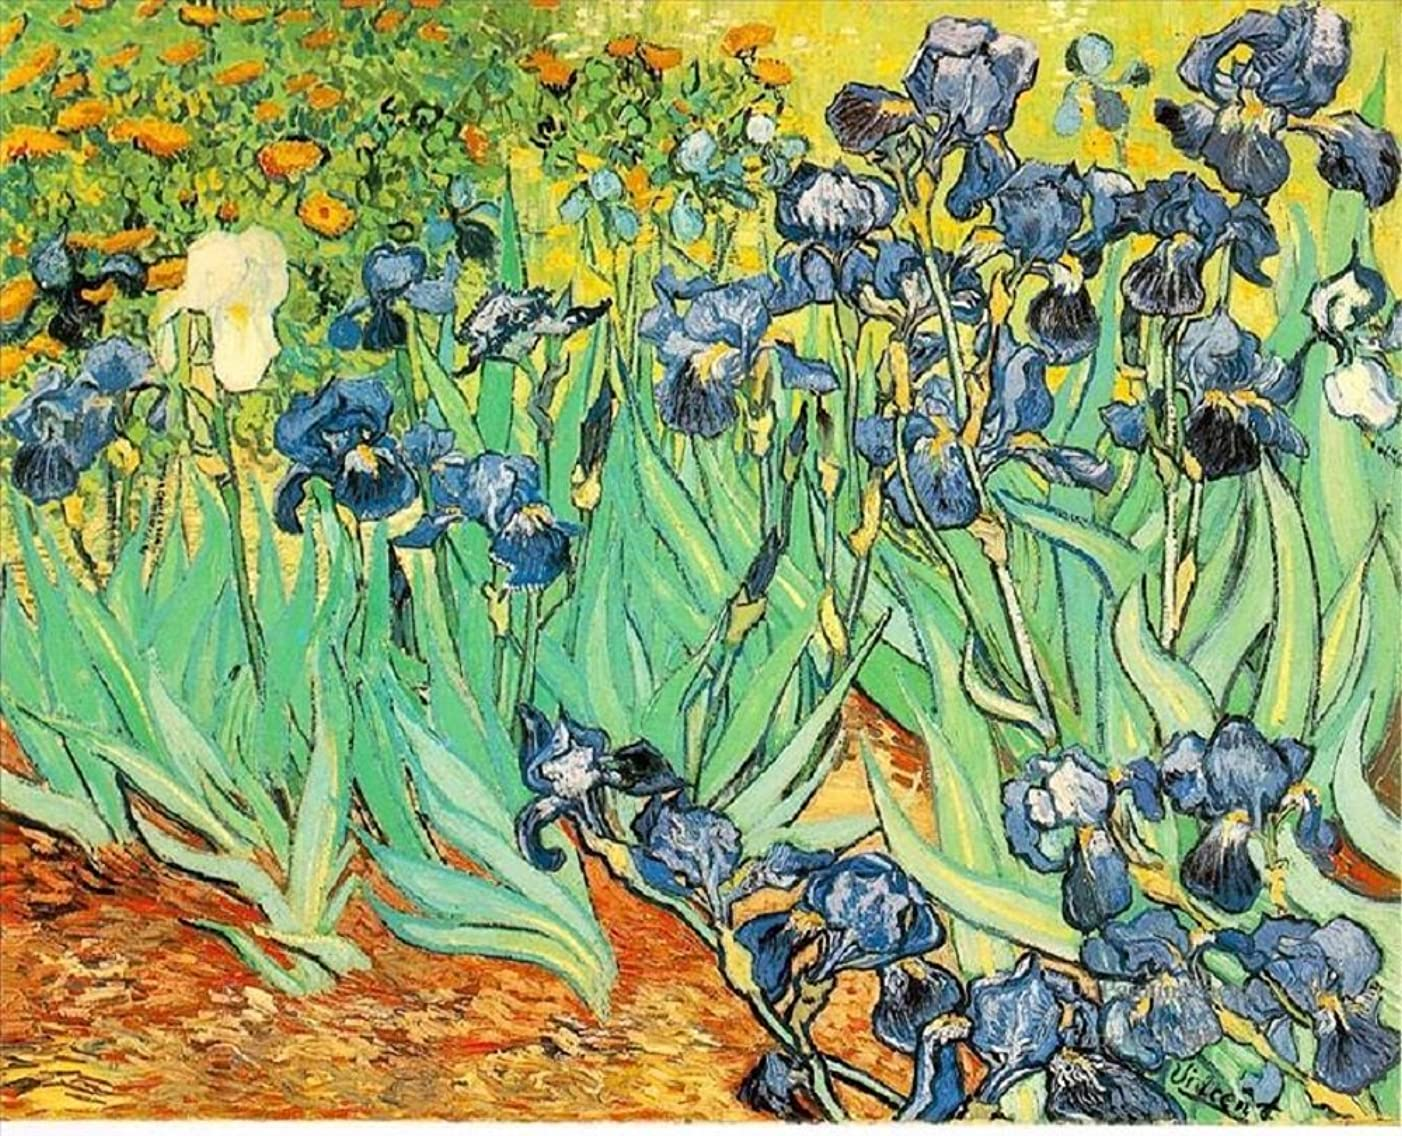 Colour Talk Diy oil painting, paint by number kit- worldwide famous oil painting Irises by Van Gogh 1620 inch.